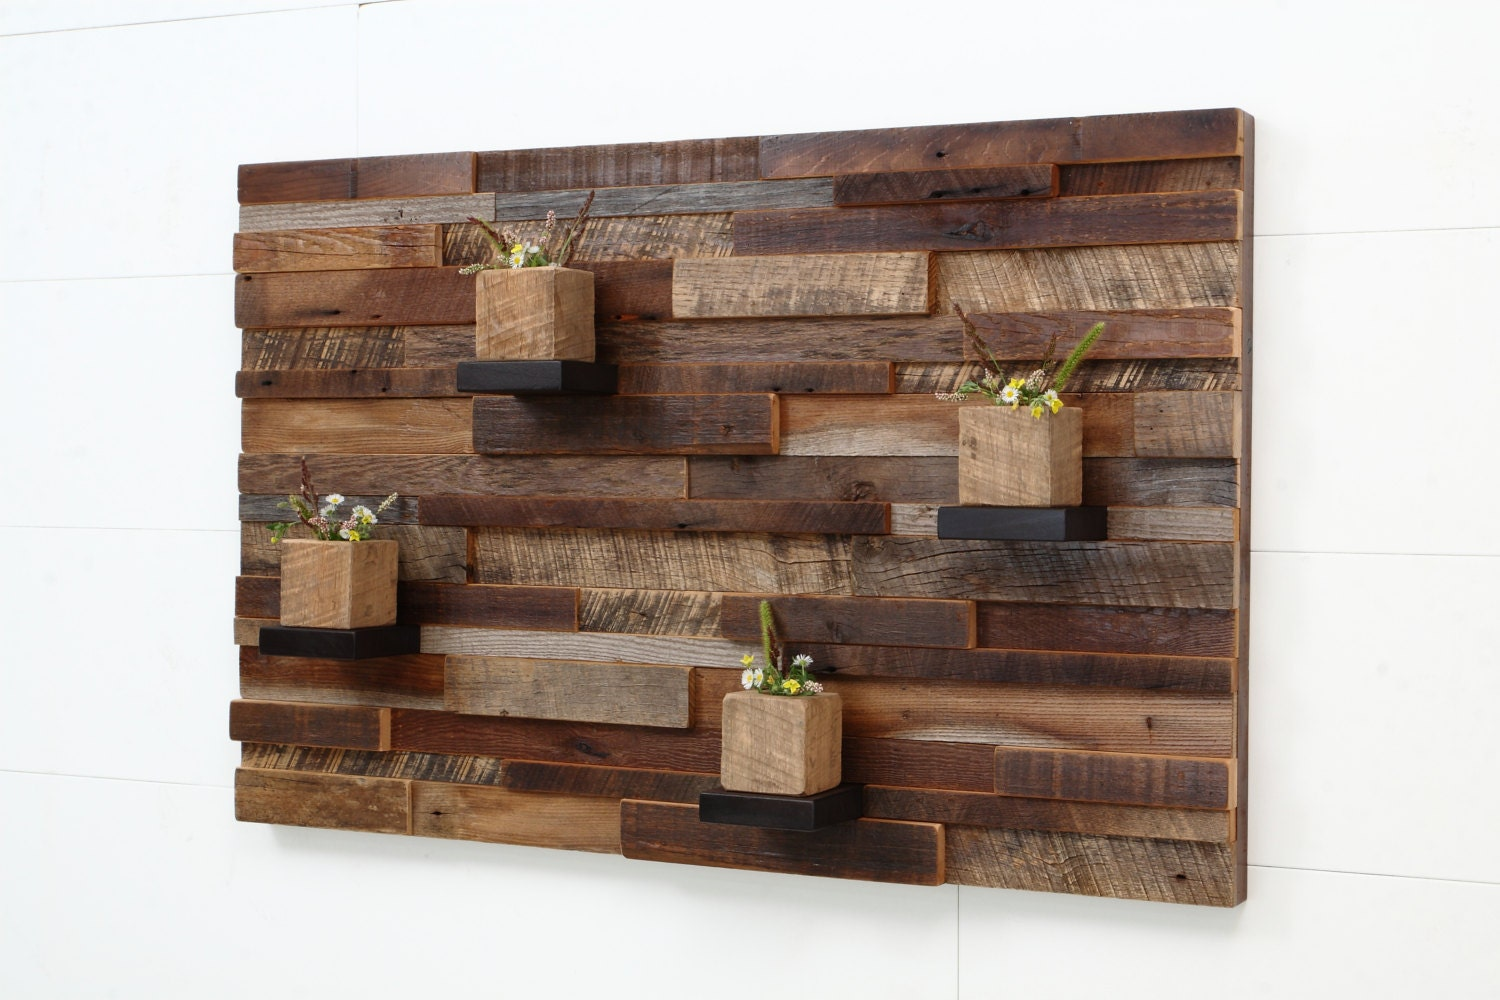 upcycling hometalk projects repurposing woodworking decor wood reclaimed finished wall